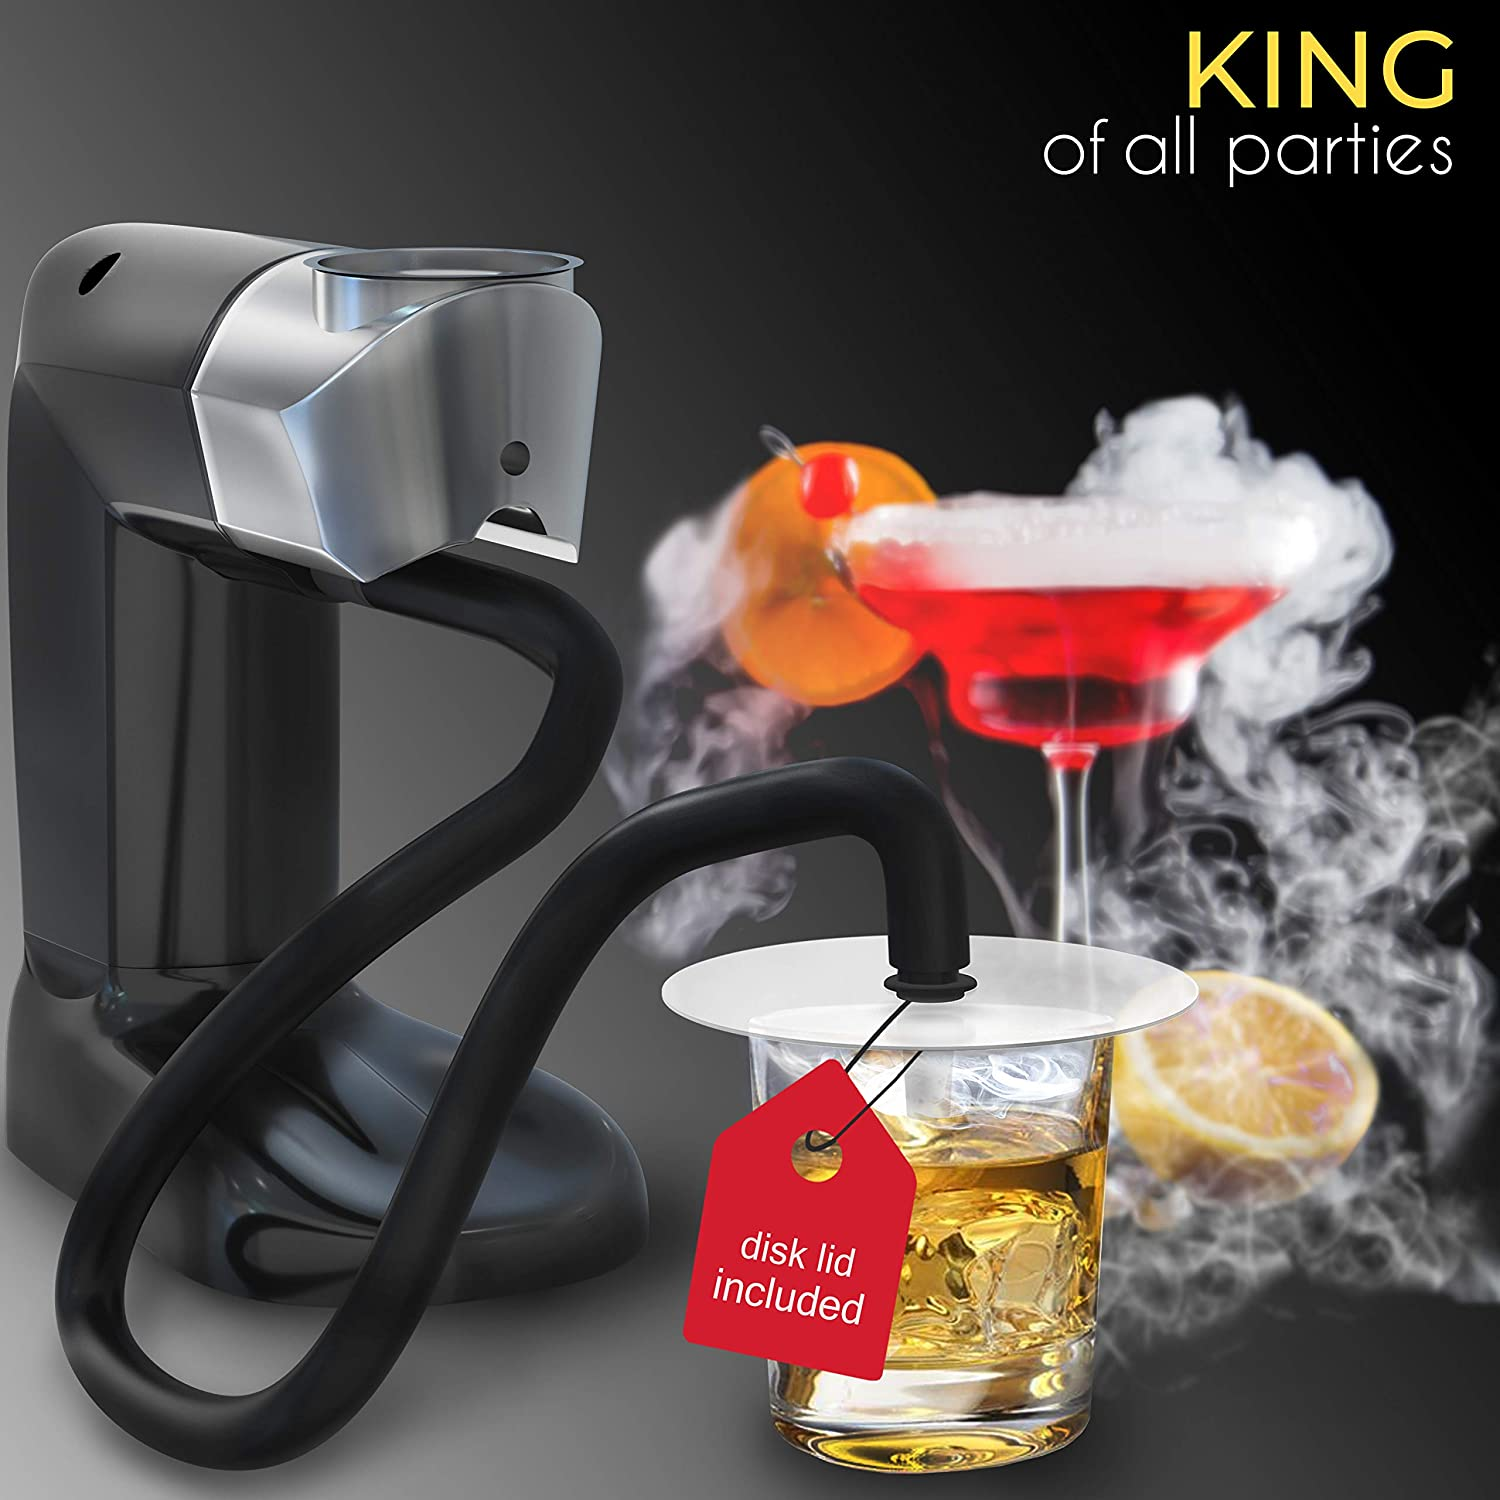 homia Smoking Gun Wood Smoke Infuser – Starter Kit, 12 PCS, Portable Electric Smoker Machine with Accessories and Wood Chips – Cold Smoke for Food and Drinks